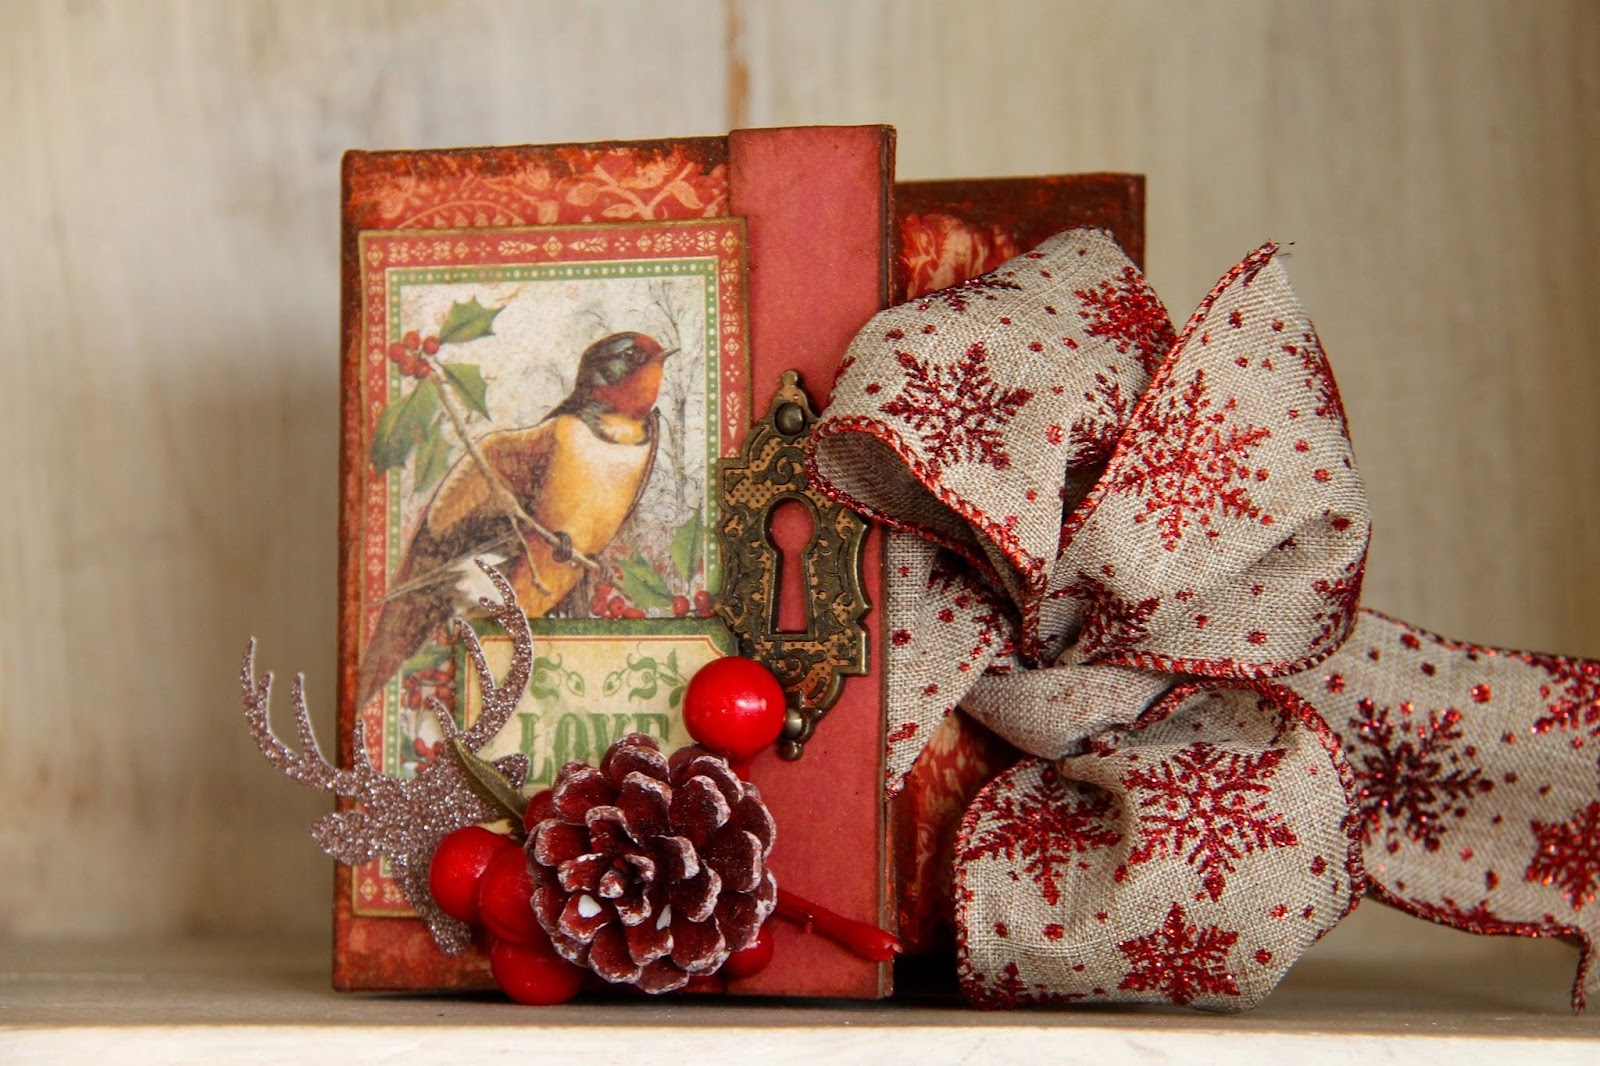 Winter Wonderland Book Box by Marina Blaukitchen Product by Graphic 45 photo 2.jpg